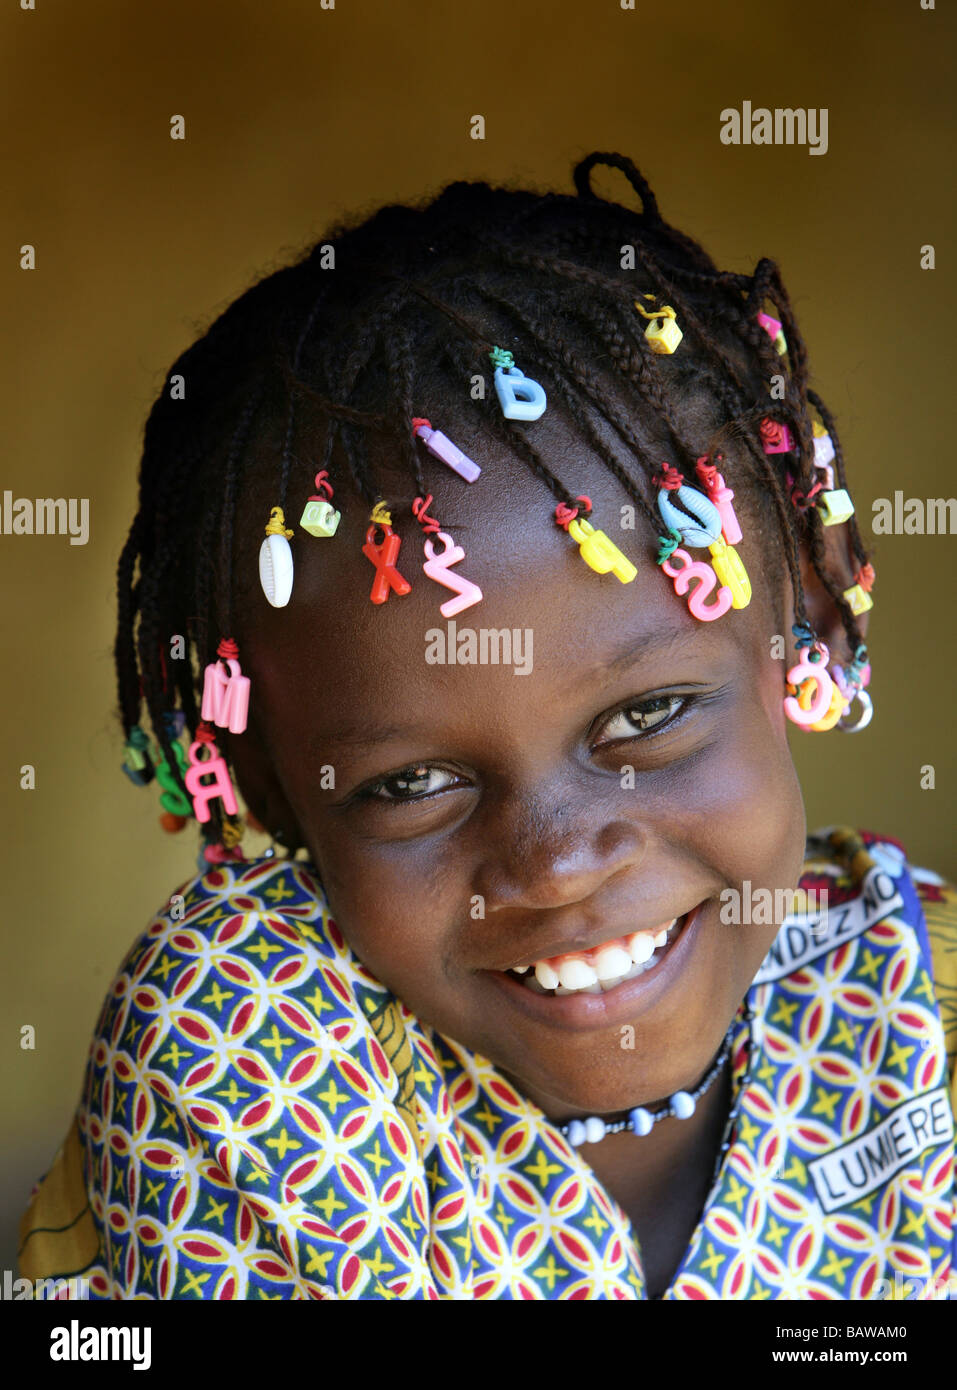 smiling girl with letters in her dreadlocks, Guinea, West Africa - Stock Image